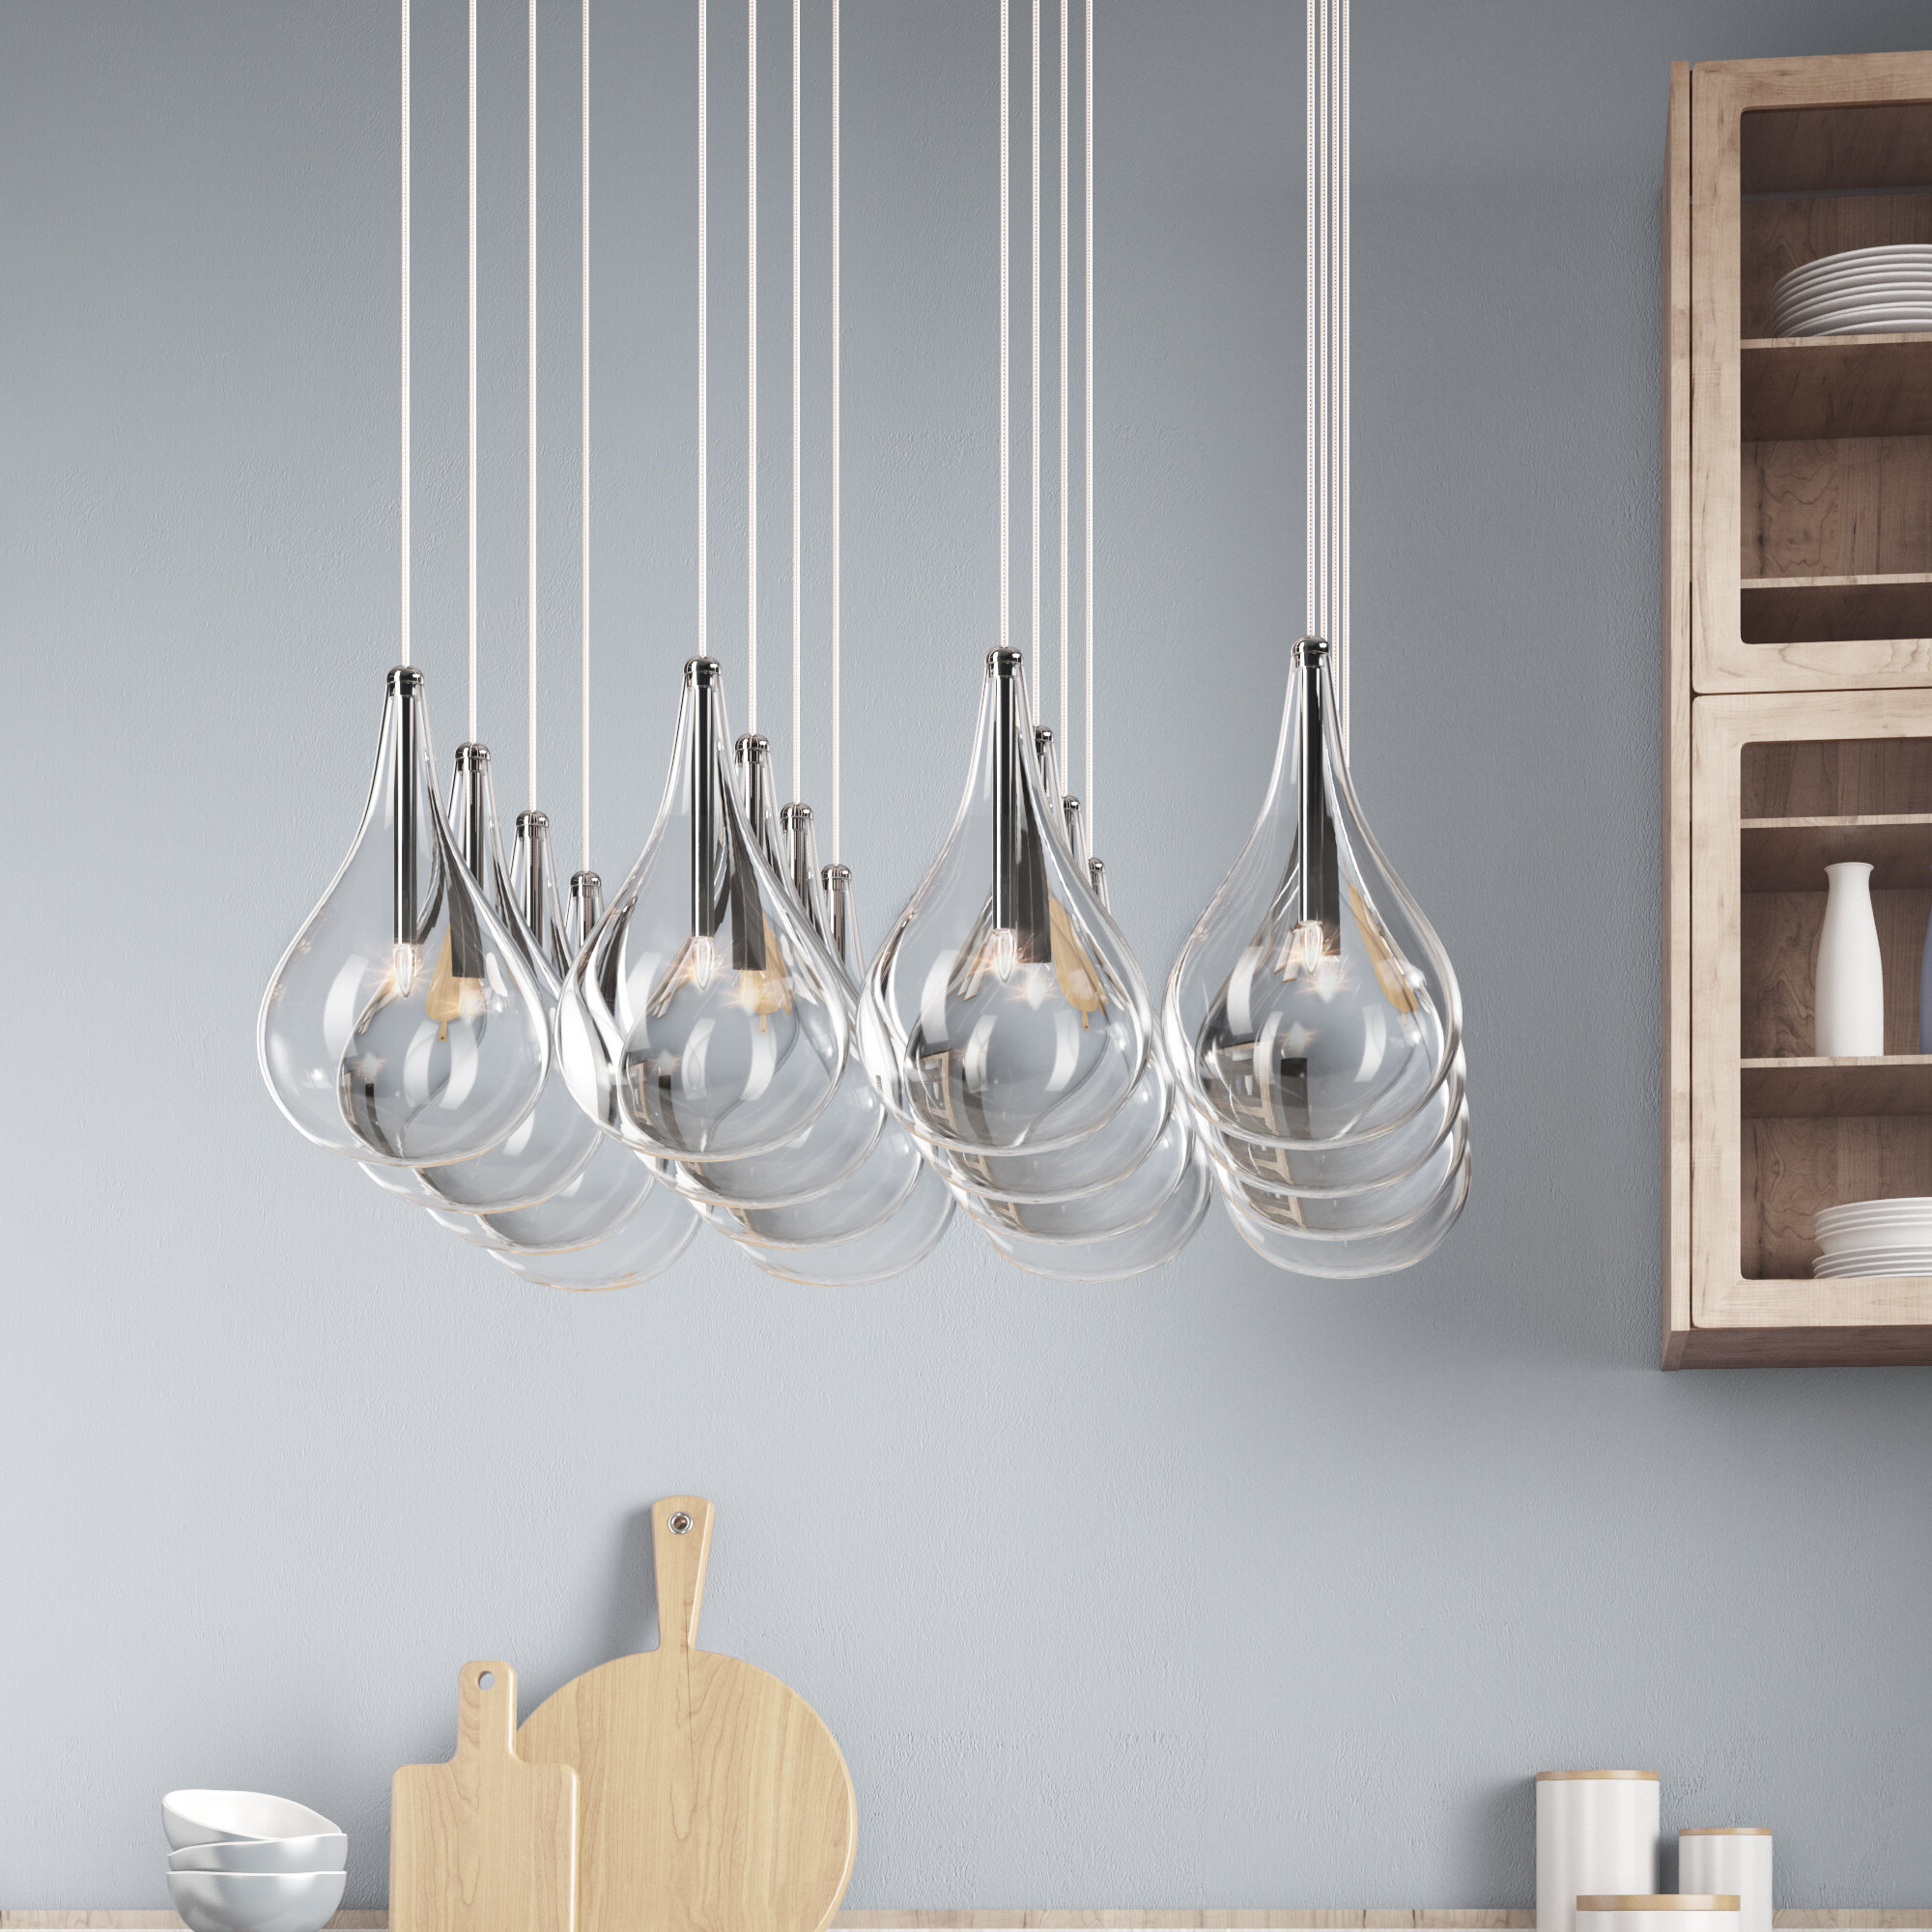 Most Current Wade Logan Neal 16 Light Kitchen Island Pendant & Reviews Pertaining To Neal 9 Light Kitchen Island Teardrop Pendants (View 7 of 20)